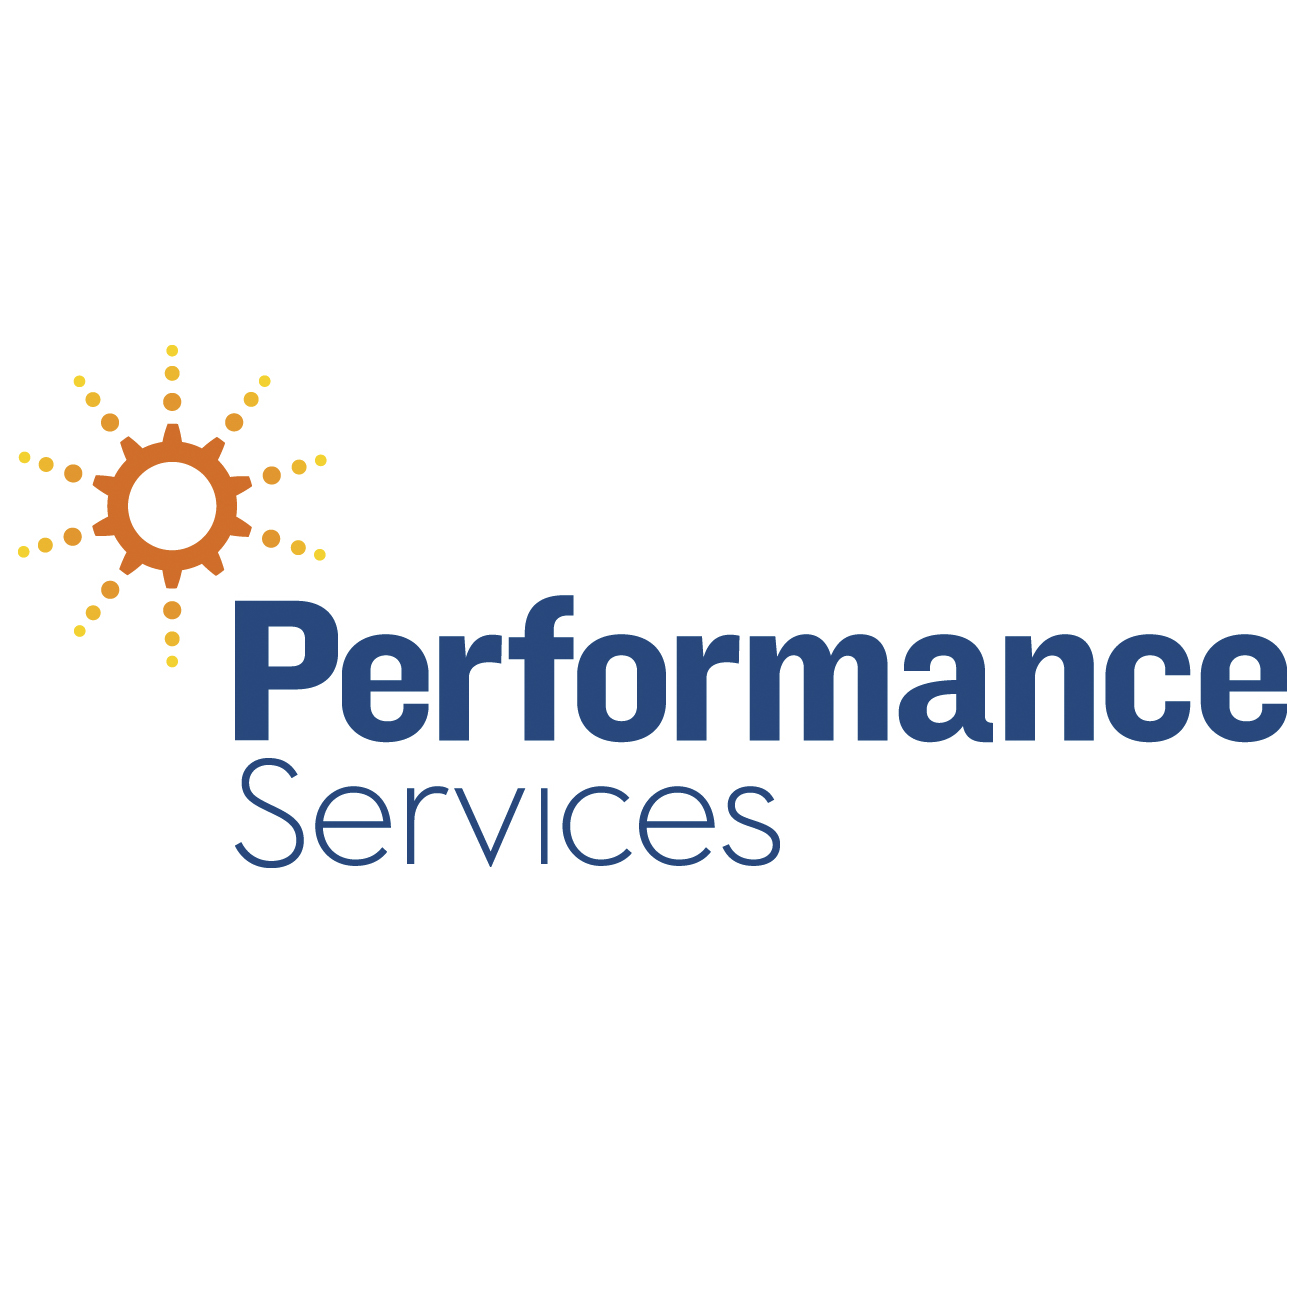 Performance Services 2016 copy